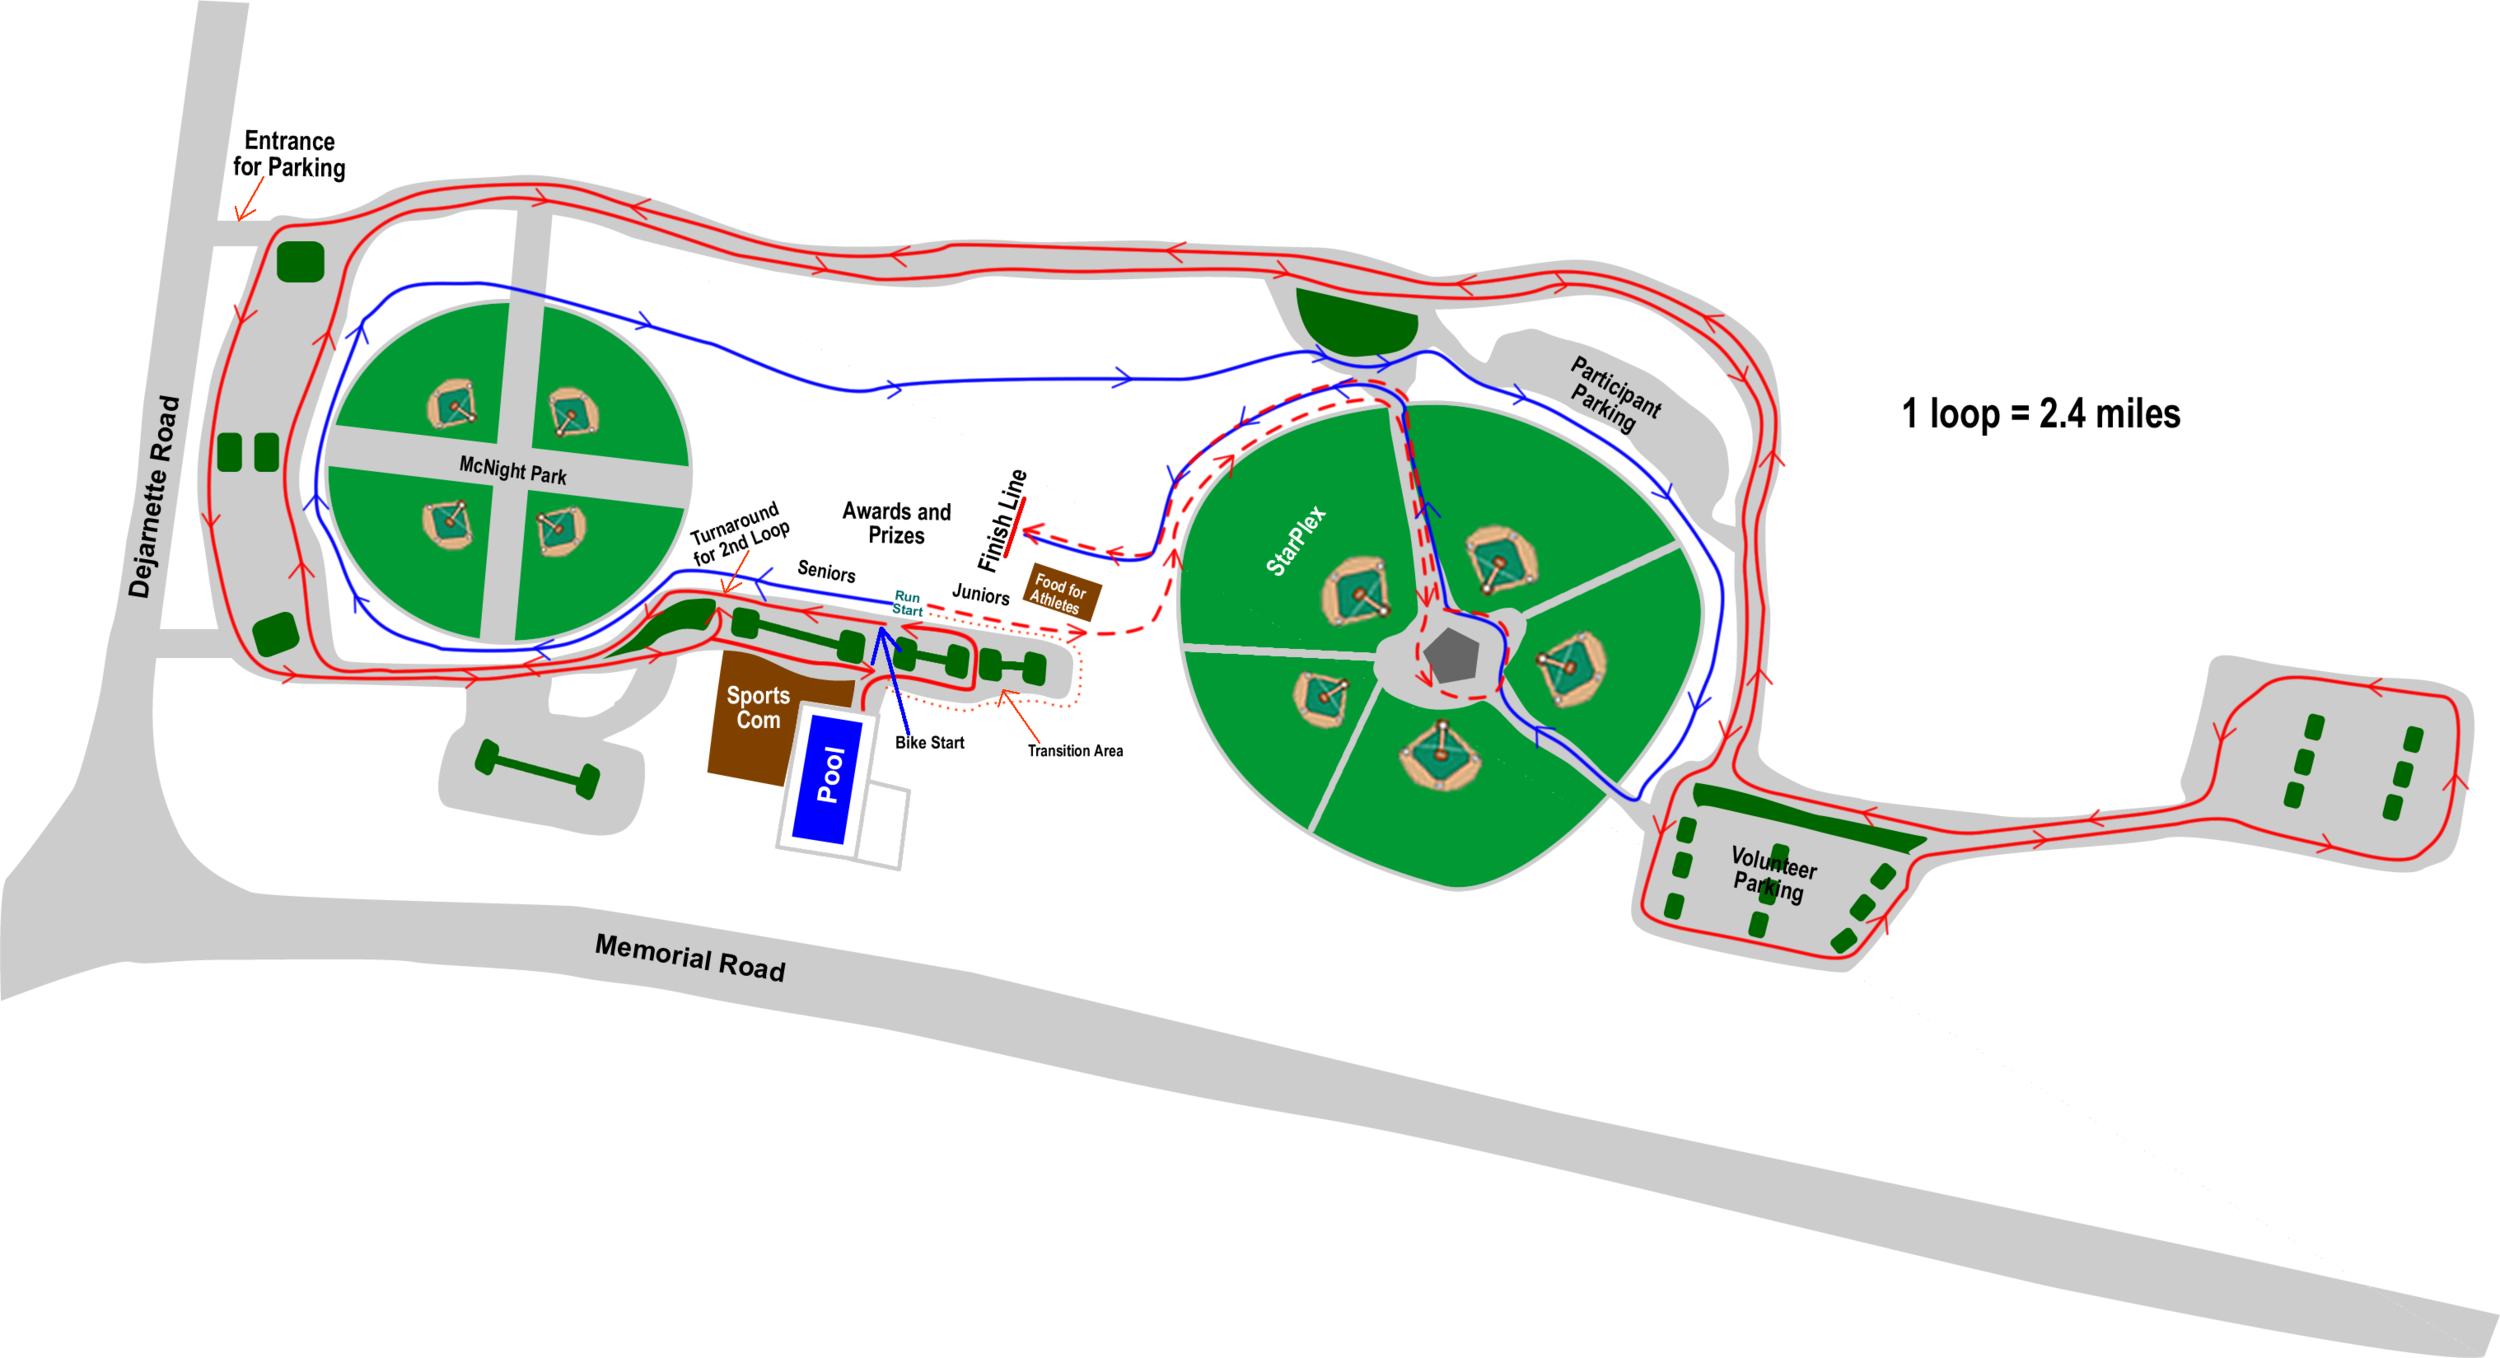 ike and Run map - including parking